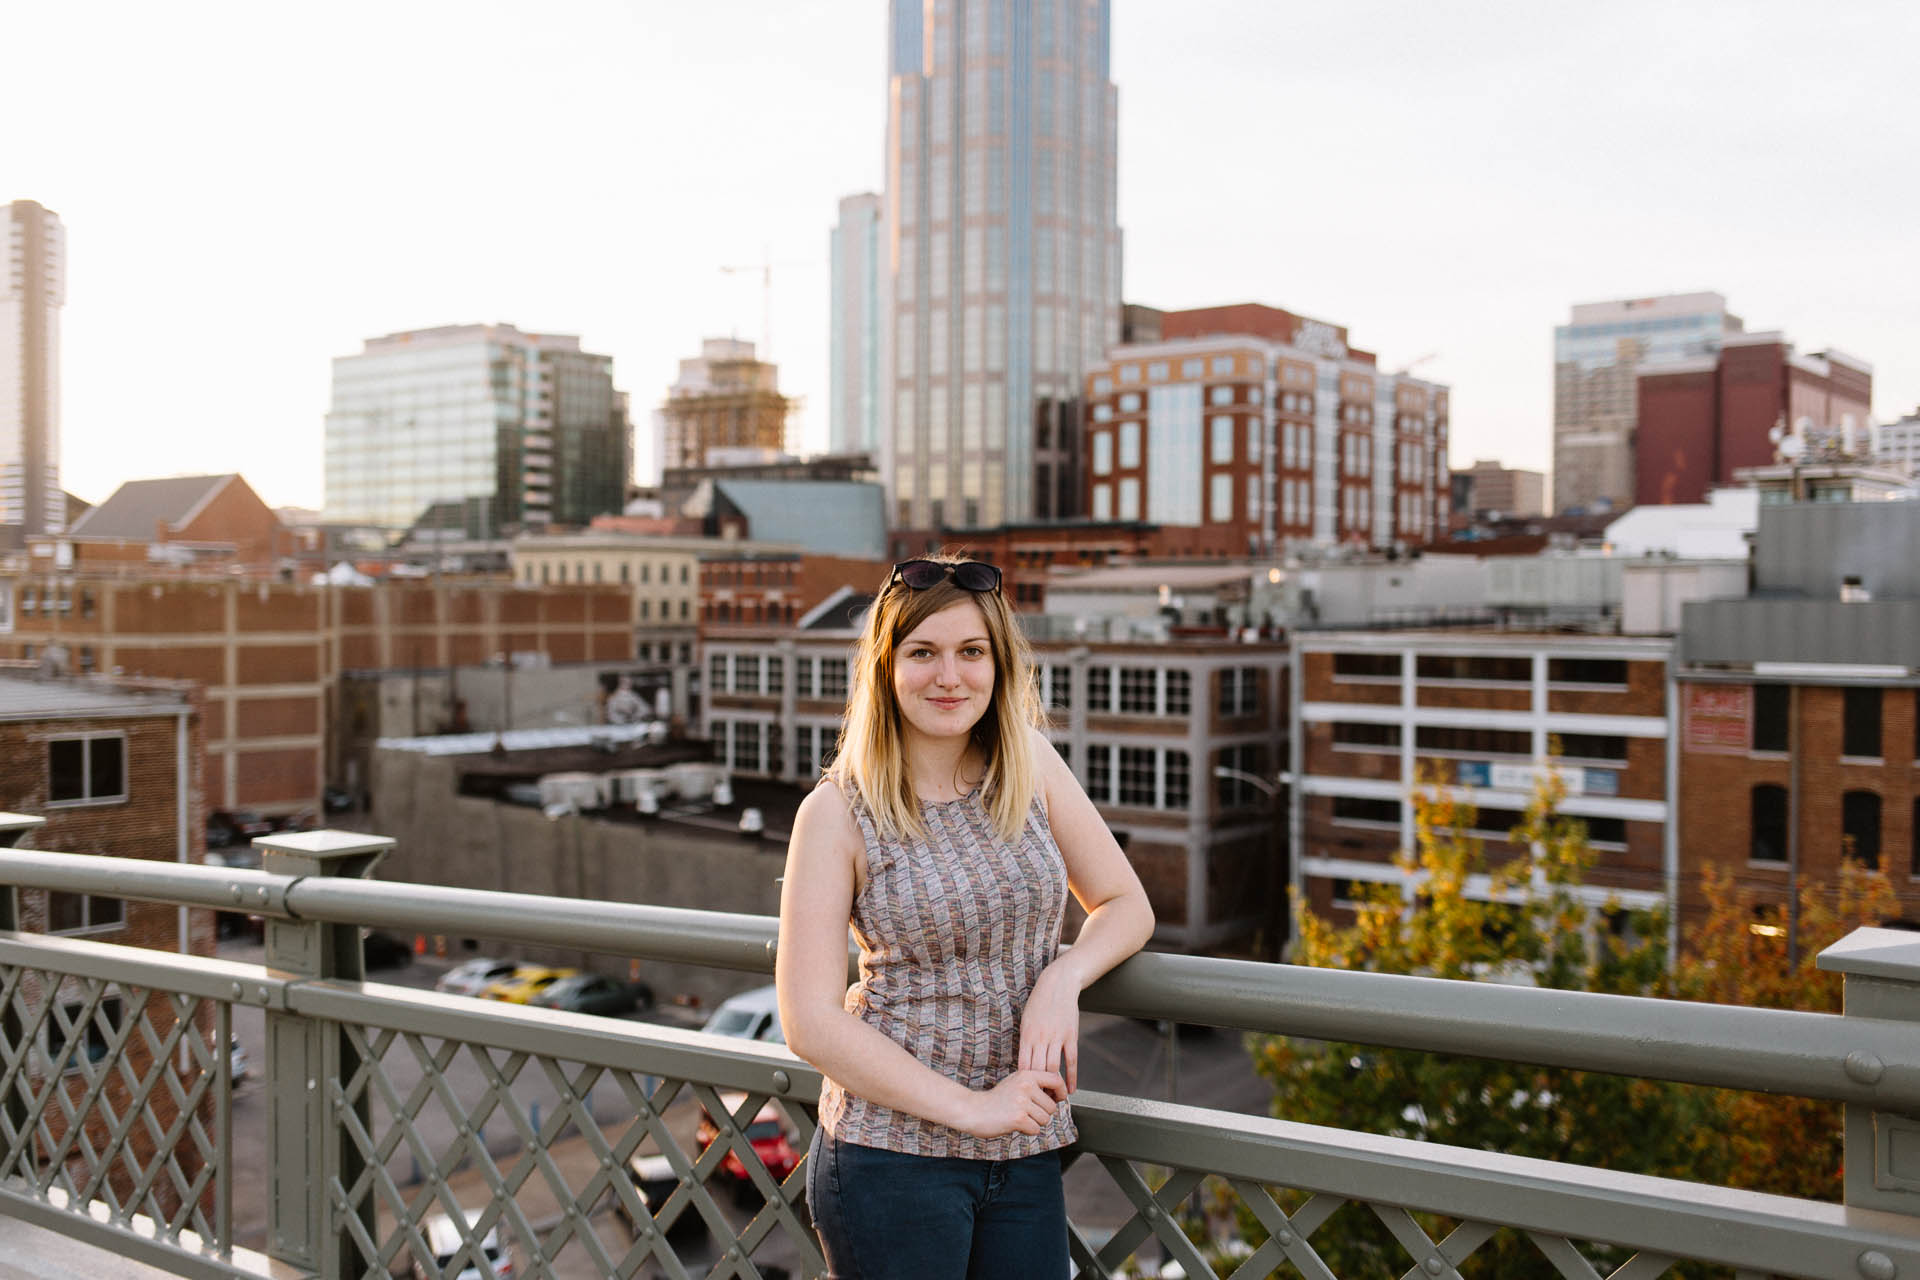 nashville_photographer_flavie_nelly_holidays-5